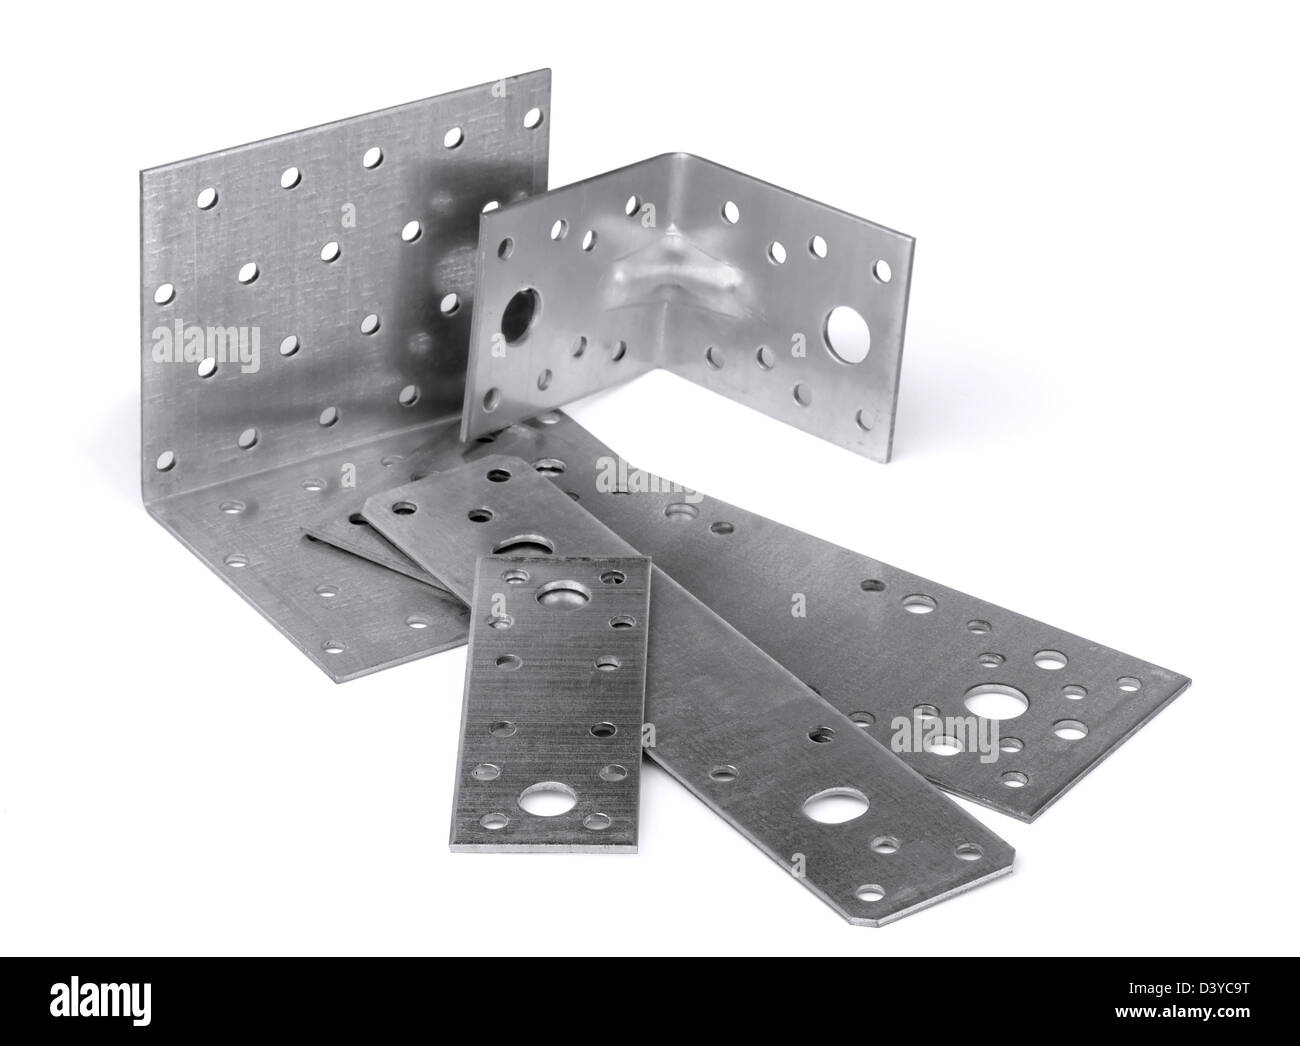 Mounting angle bracket and plate isolated on white - Stock Image